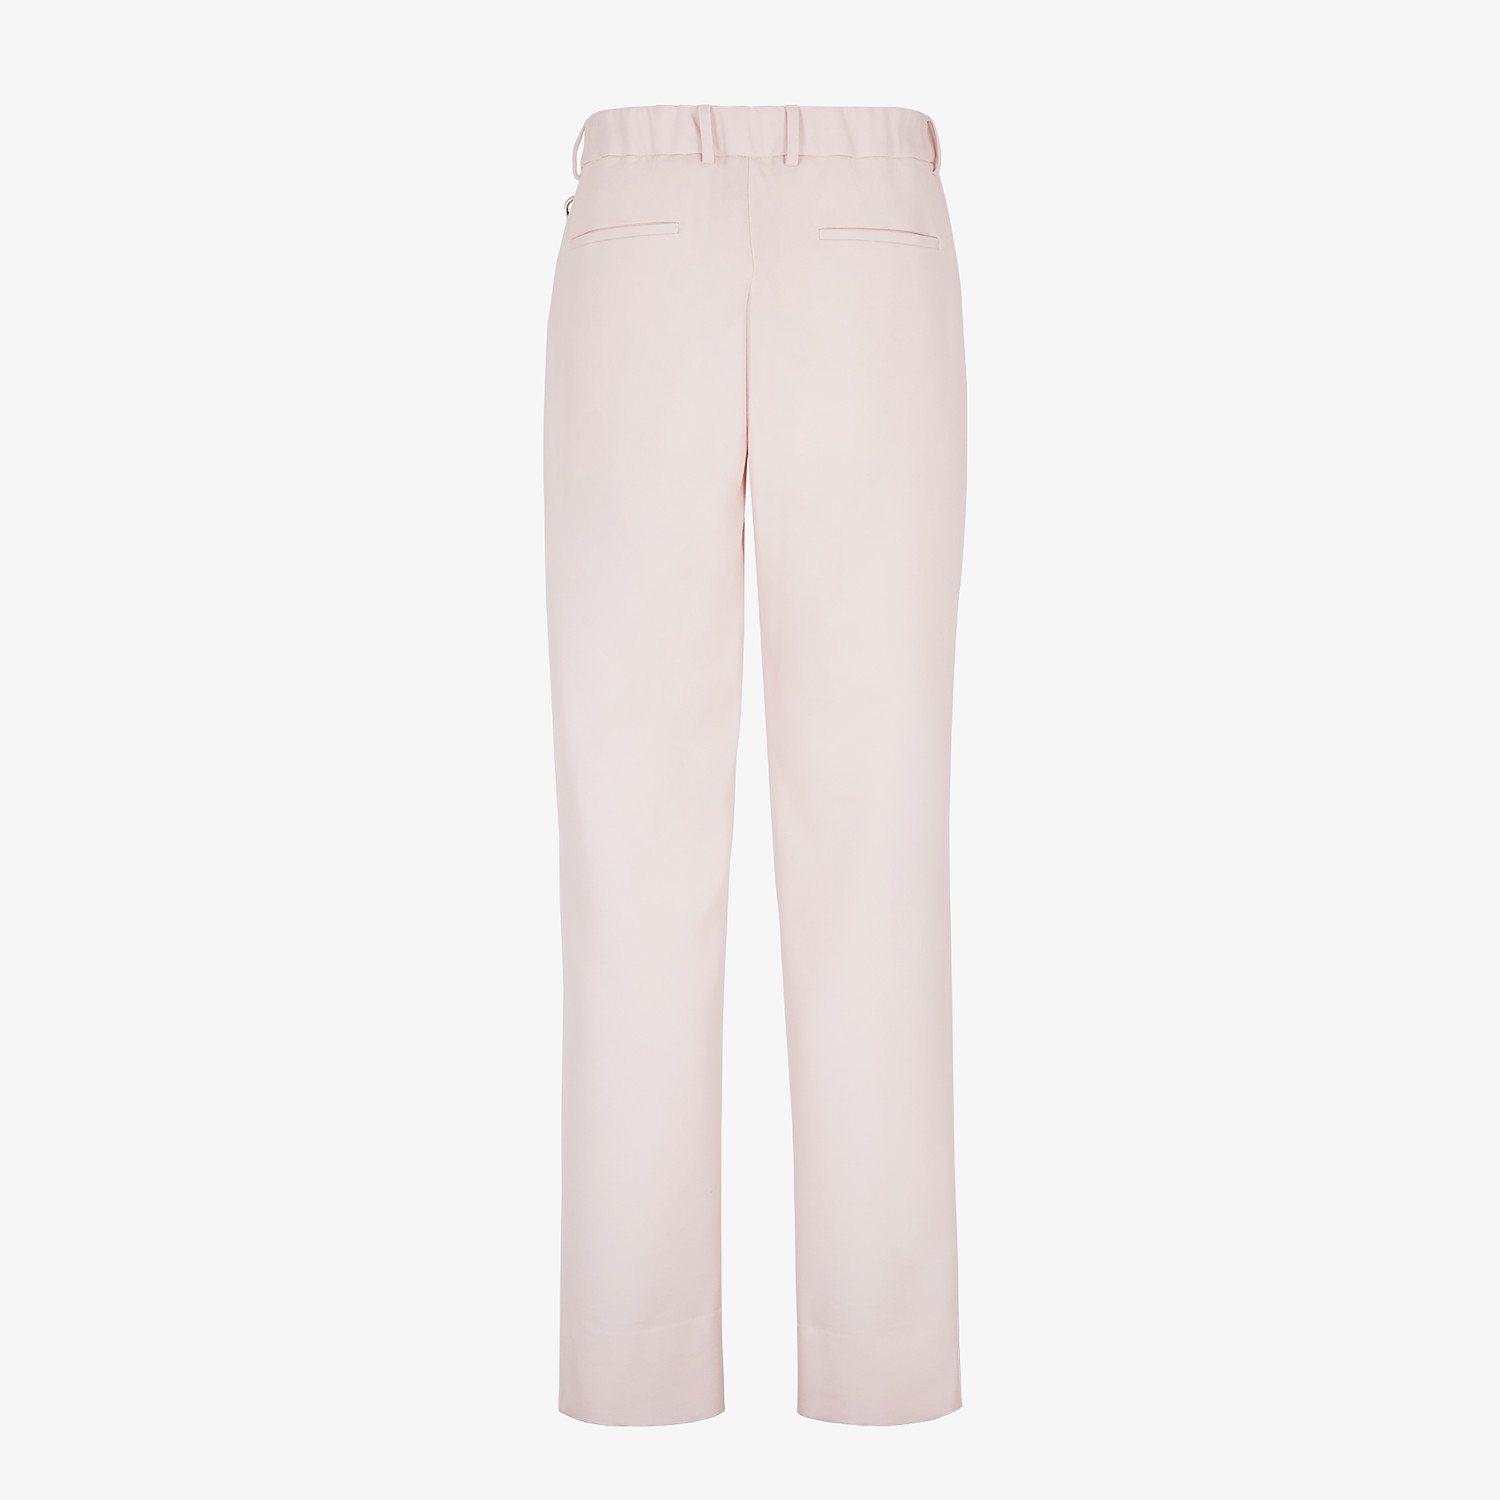 FENDI TROUSERS - Pink wool trousers - view 2 detail